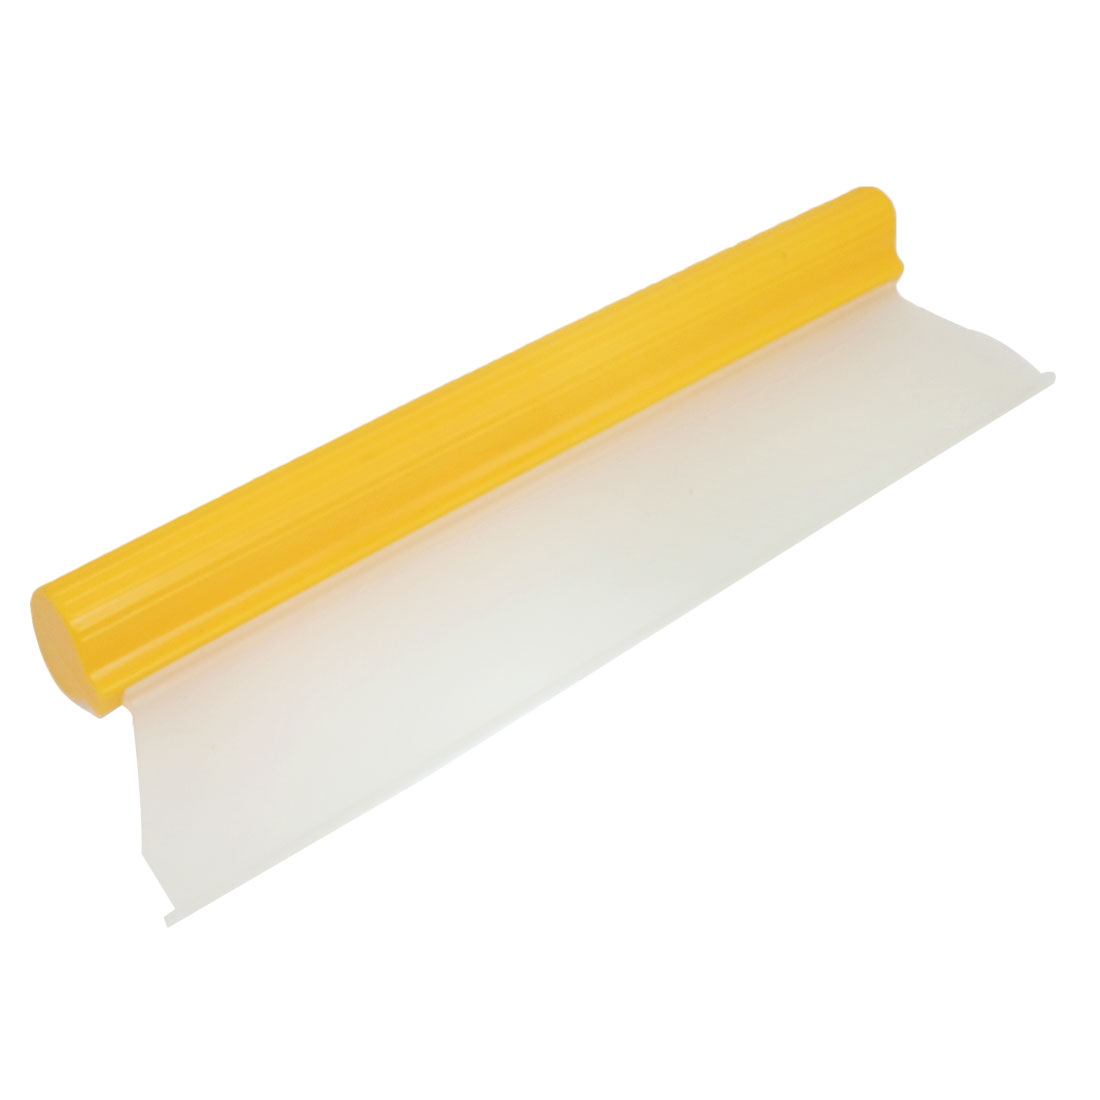 "Yellow Clear 14"" Silicone Blade Car Window Film Scraper Cleaner Tool"